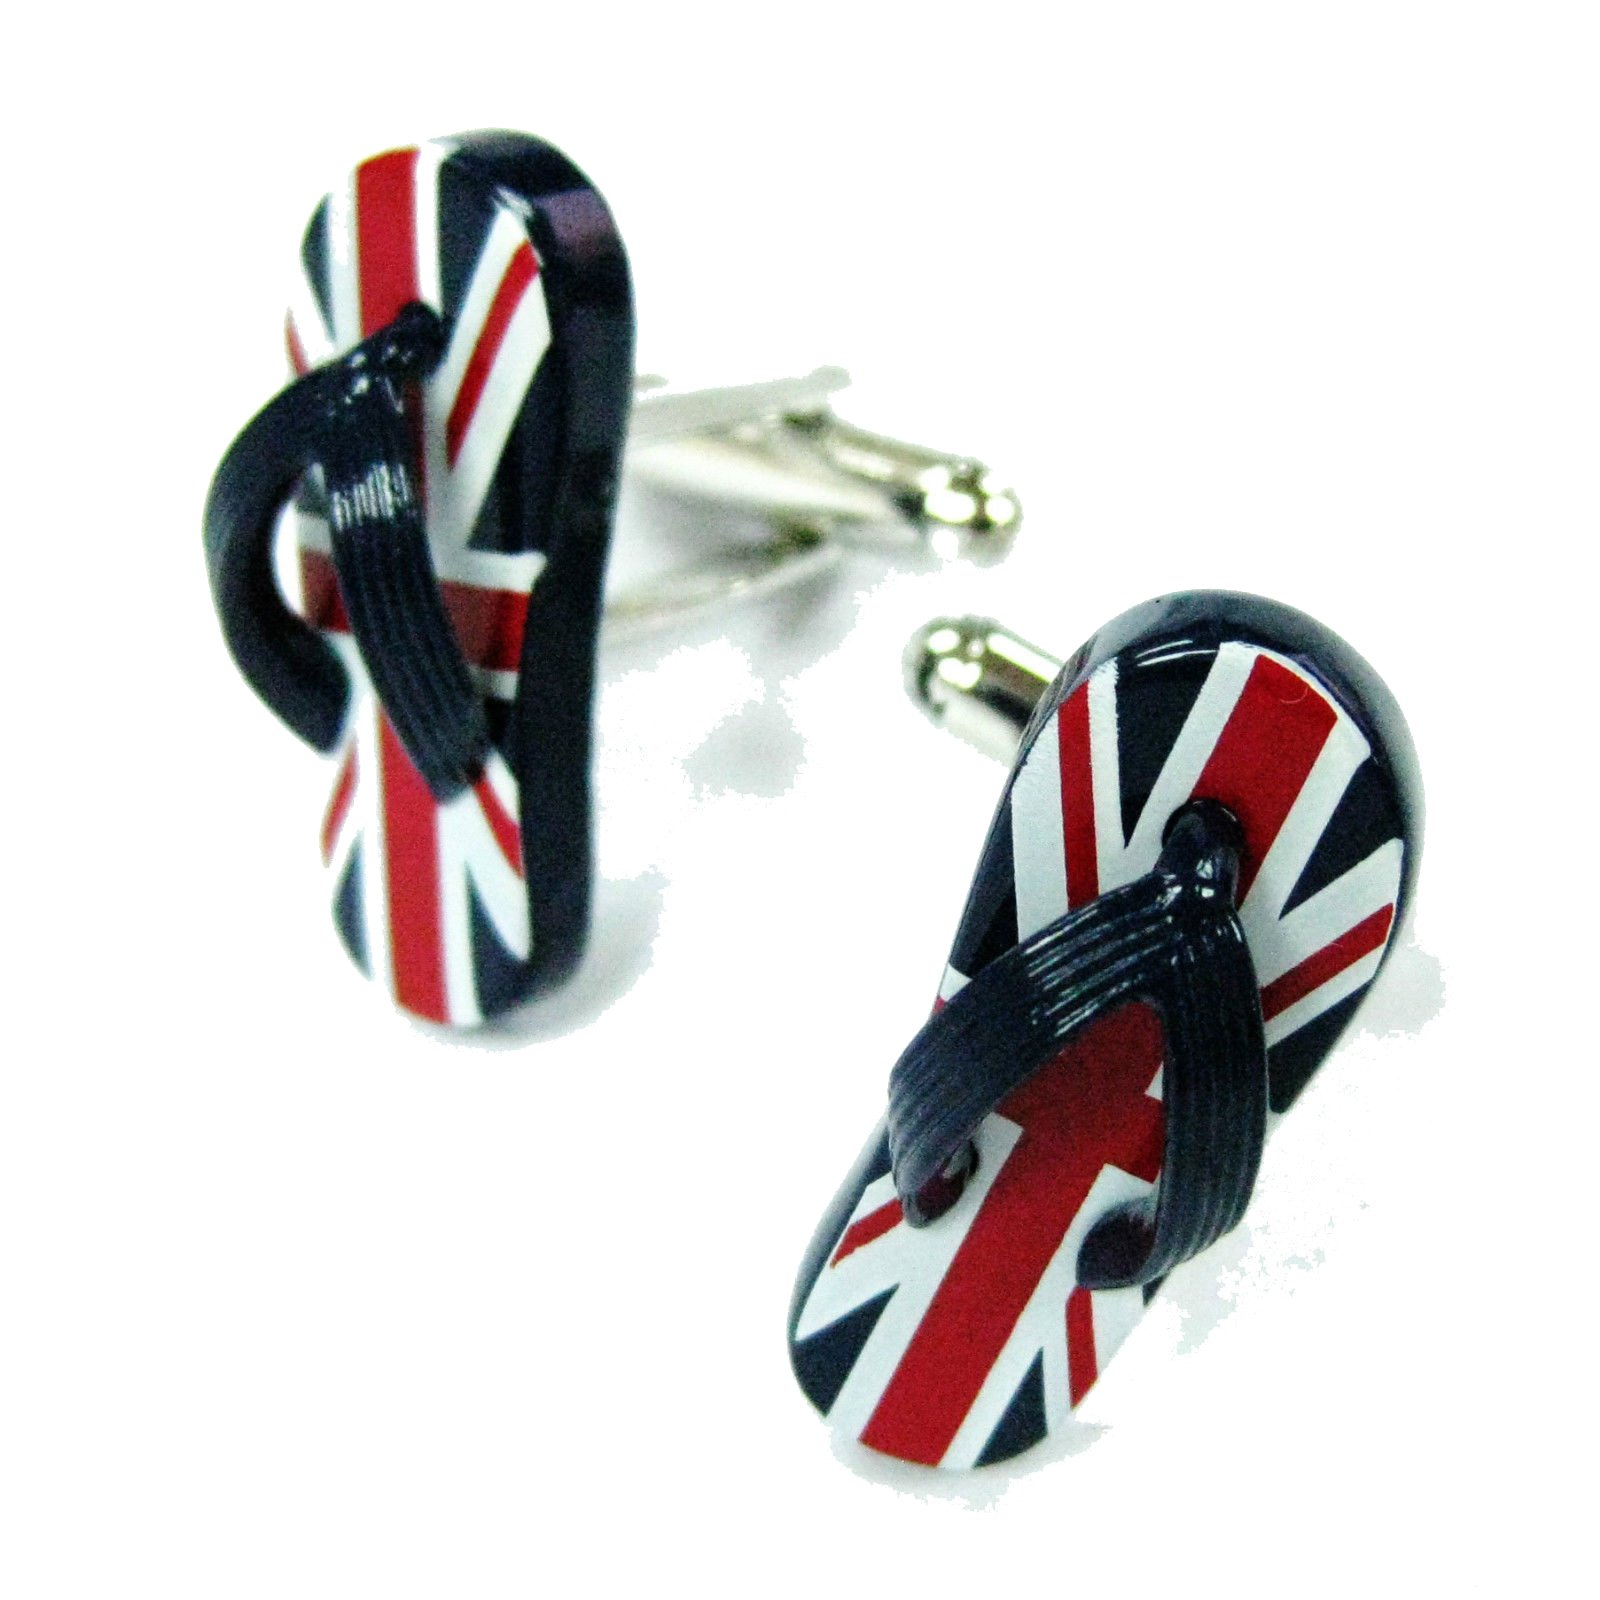 Mens Executive Cufflinks Summer Sun British Flag Flip Flop Sandal Shoe Cuff Links